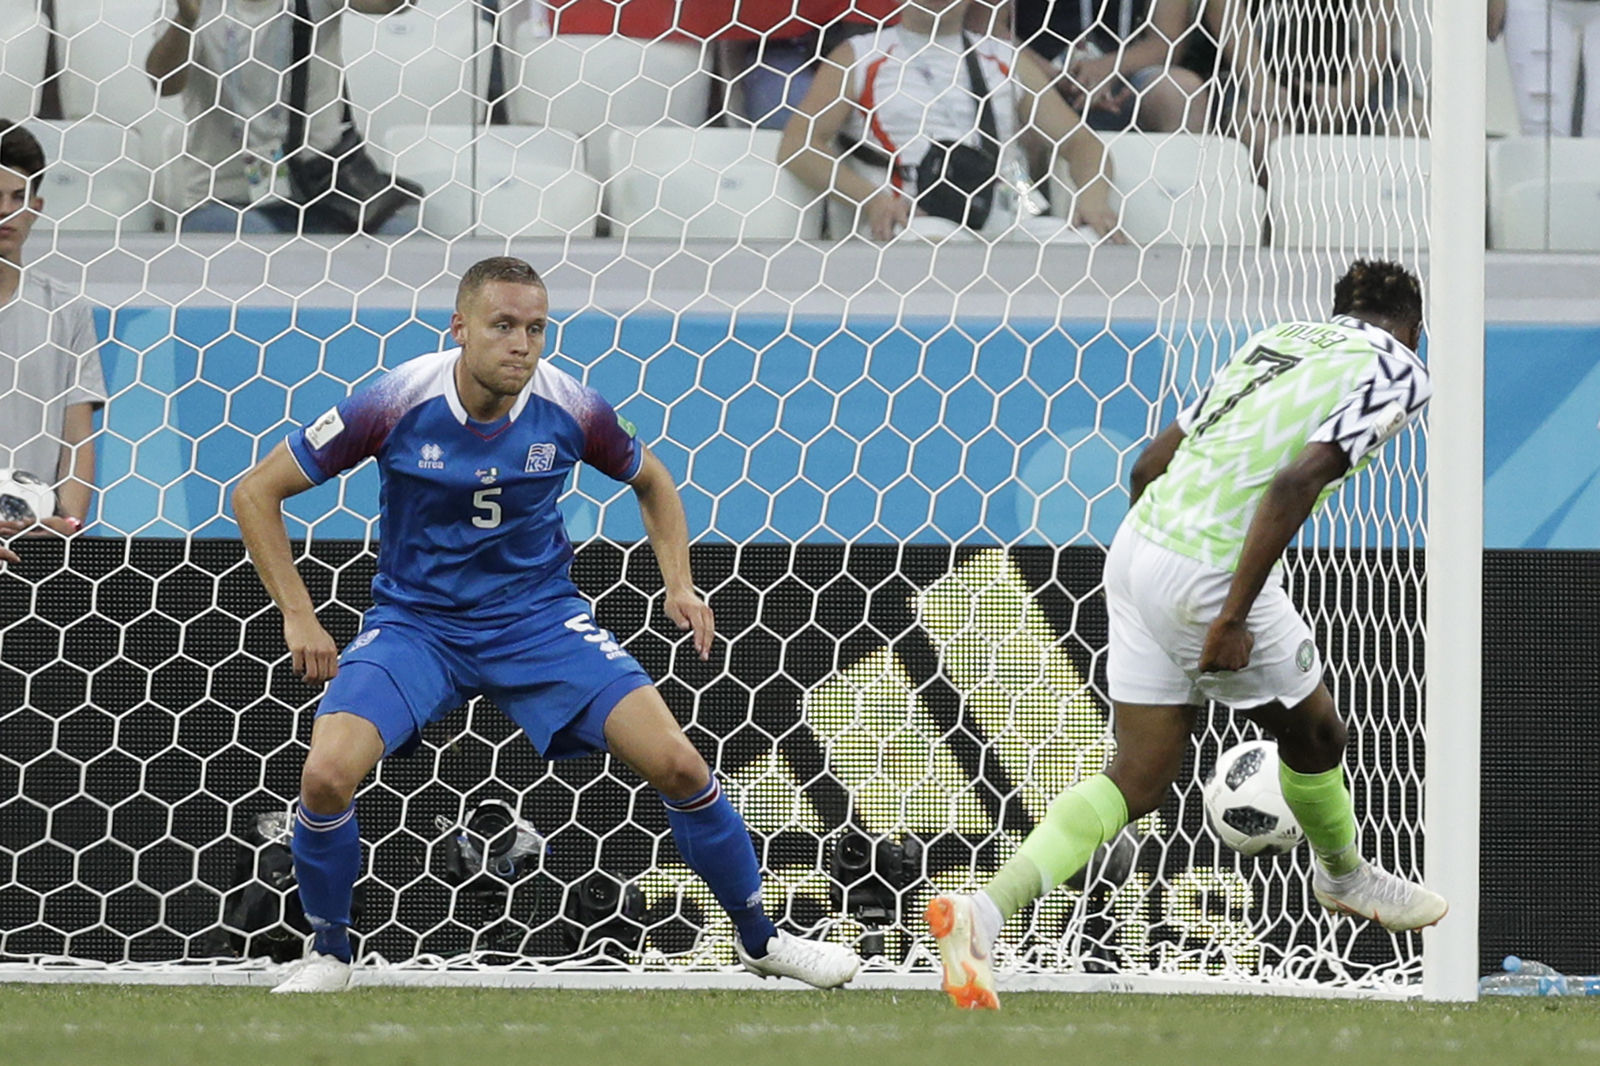 Nigeria's Ahmed Musa, right, kicks past Iceland's Sverrir Ingason to score his side's second goal during the group D match between Nigeria and Iceland at the 2018 soccer World Cup in the Volgograd Arena in Volgograd, Russia, Friday, June 22, 2018. (AP Photo/Andrew Medichini)